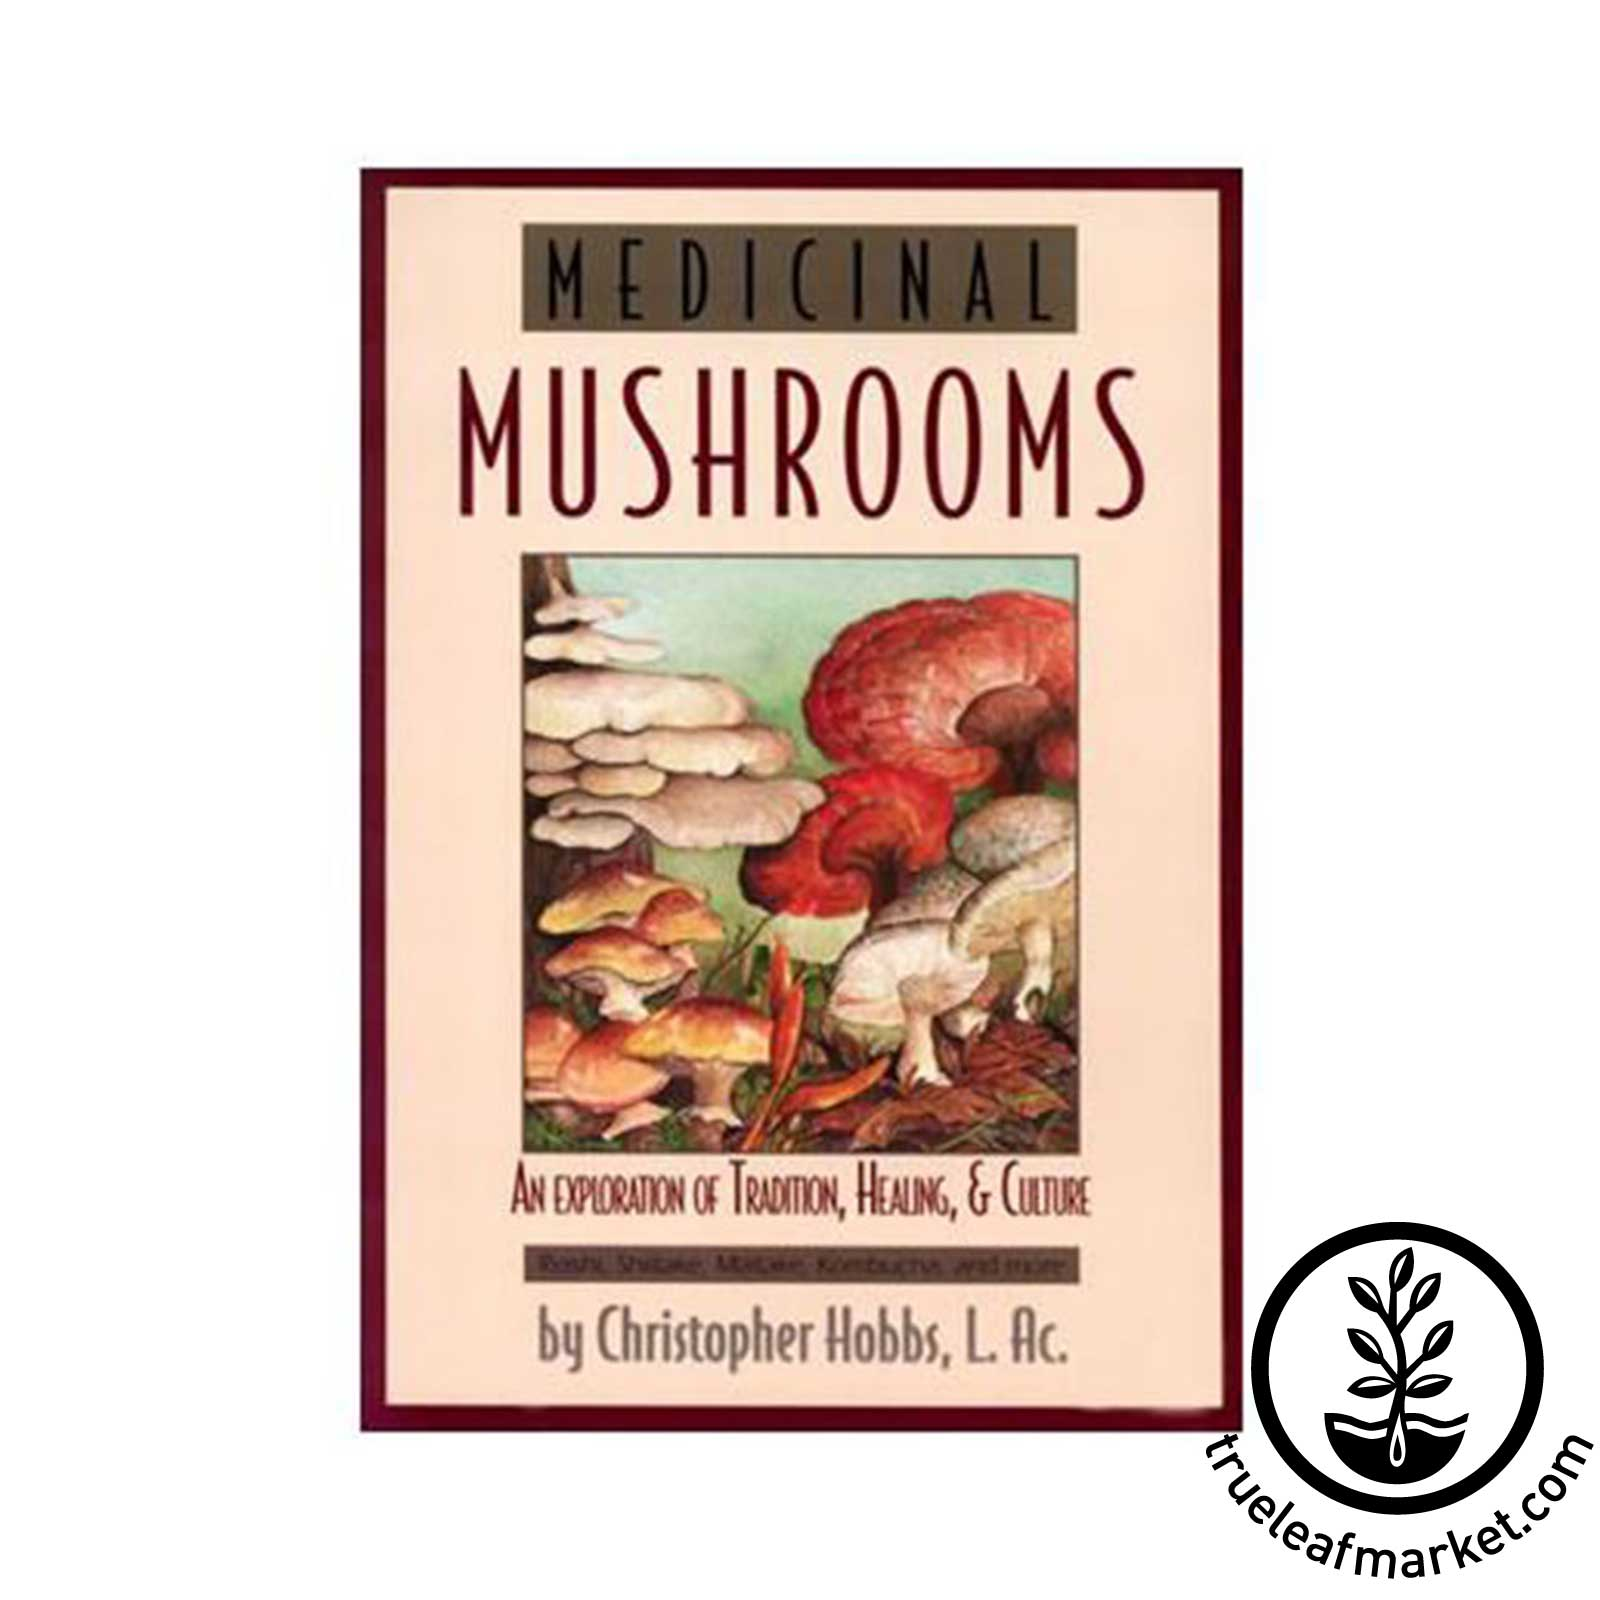 Medicinal Mushrooms by Christopher Hobbs